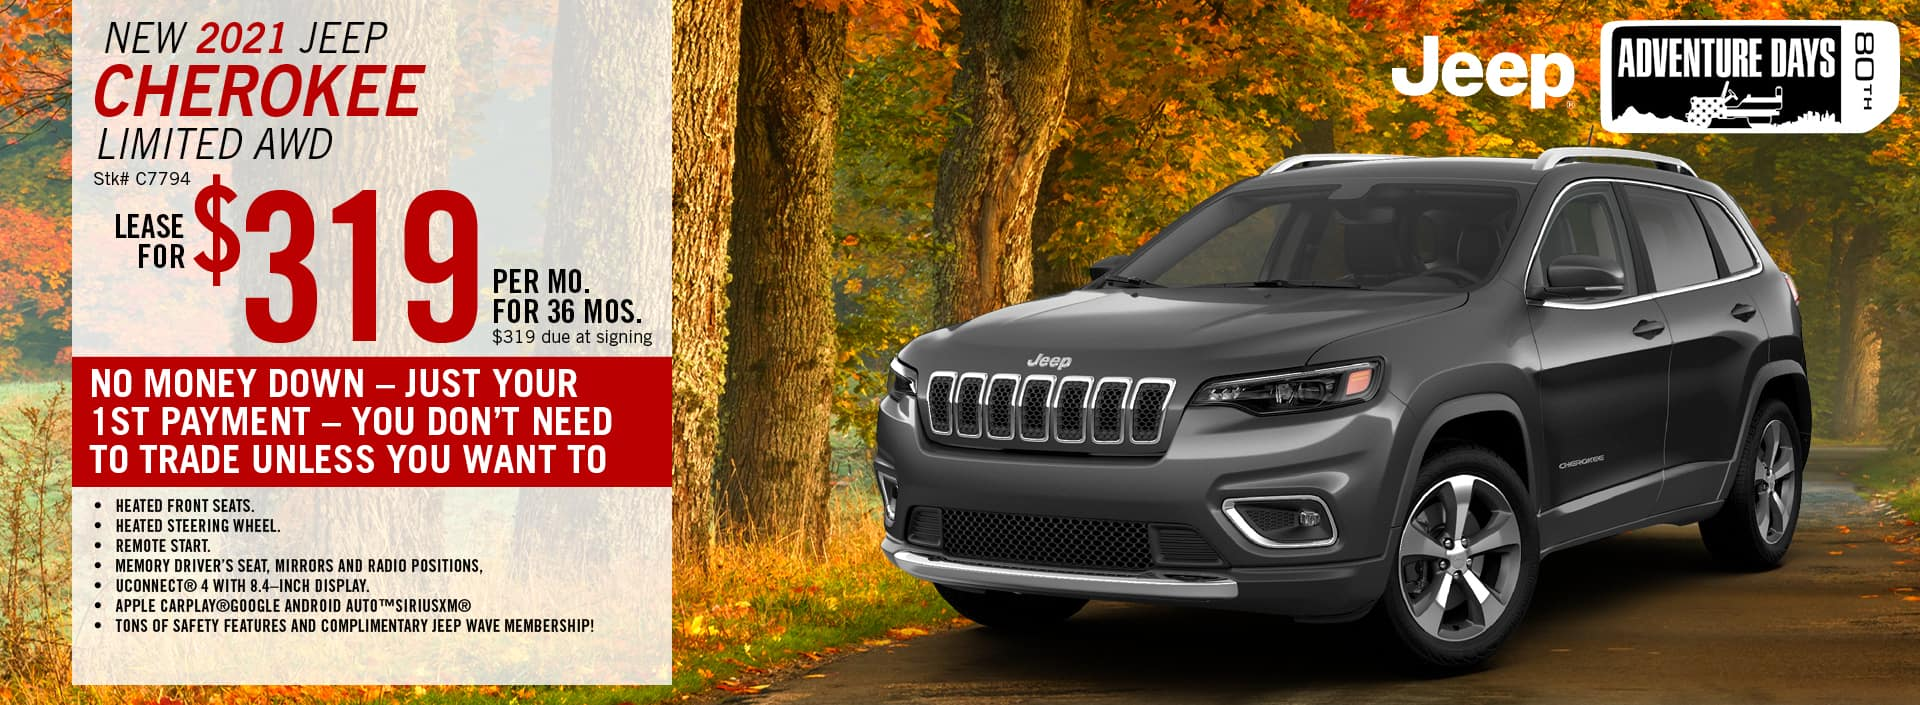 2020 Jeep Cherokee Lease Offer | Barre, VT